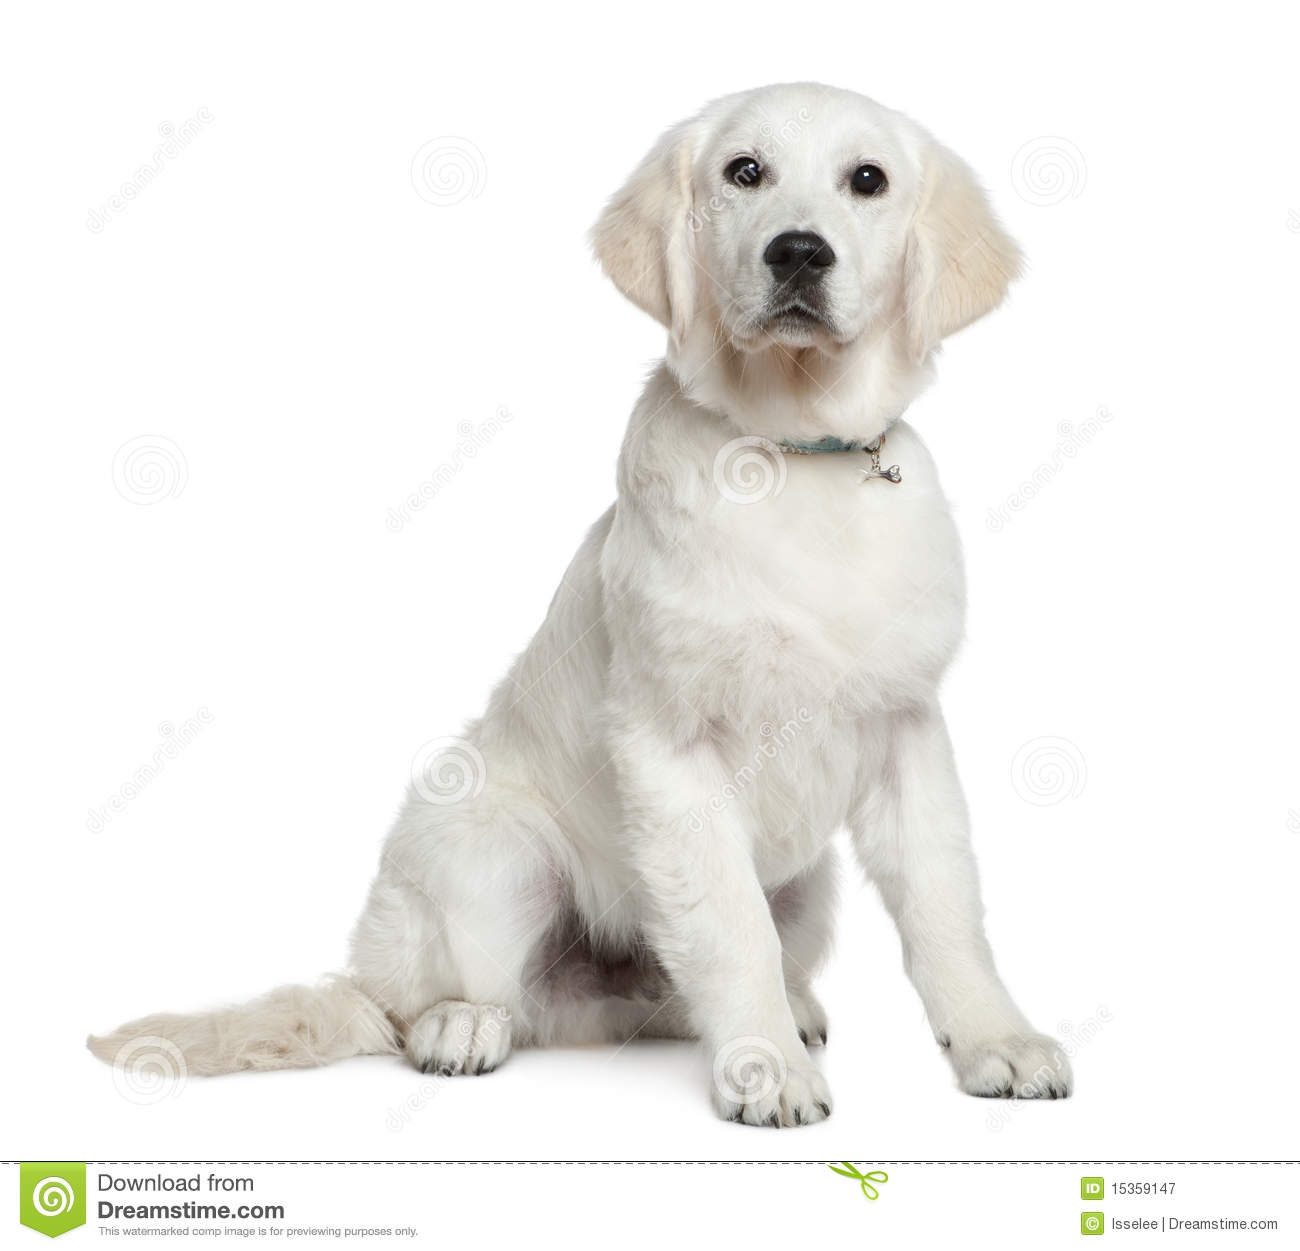 Labrador 4 Meses Golden Retriever Puppy, 5 Months Old, Sitting Stock Image